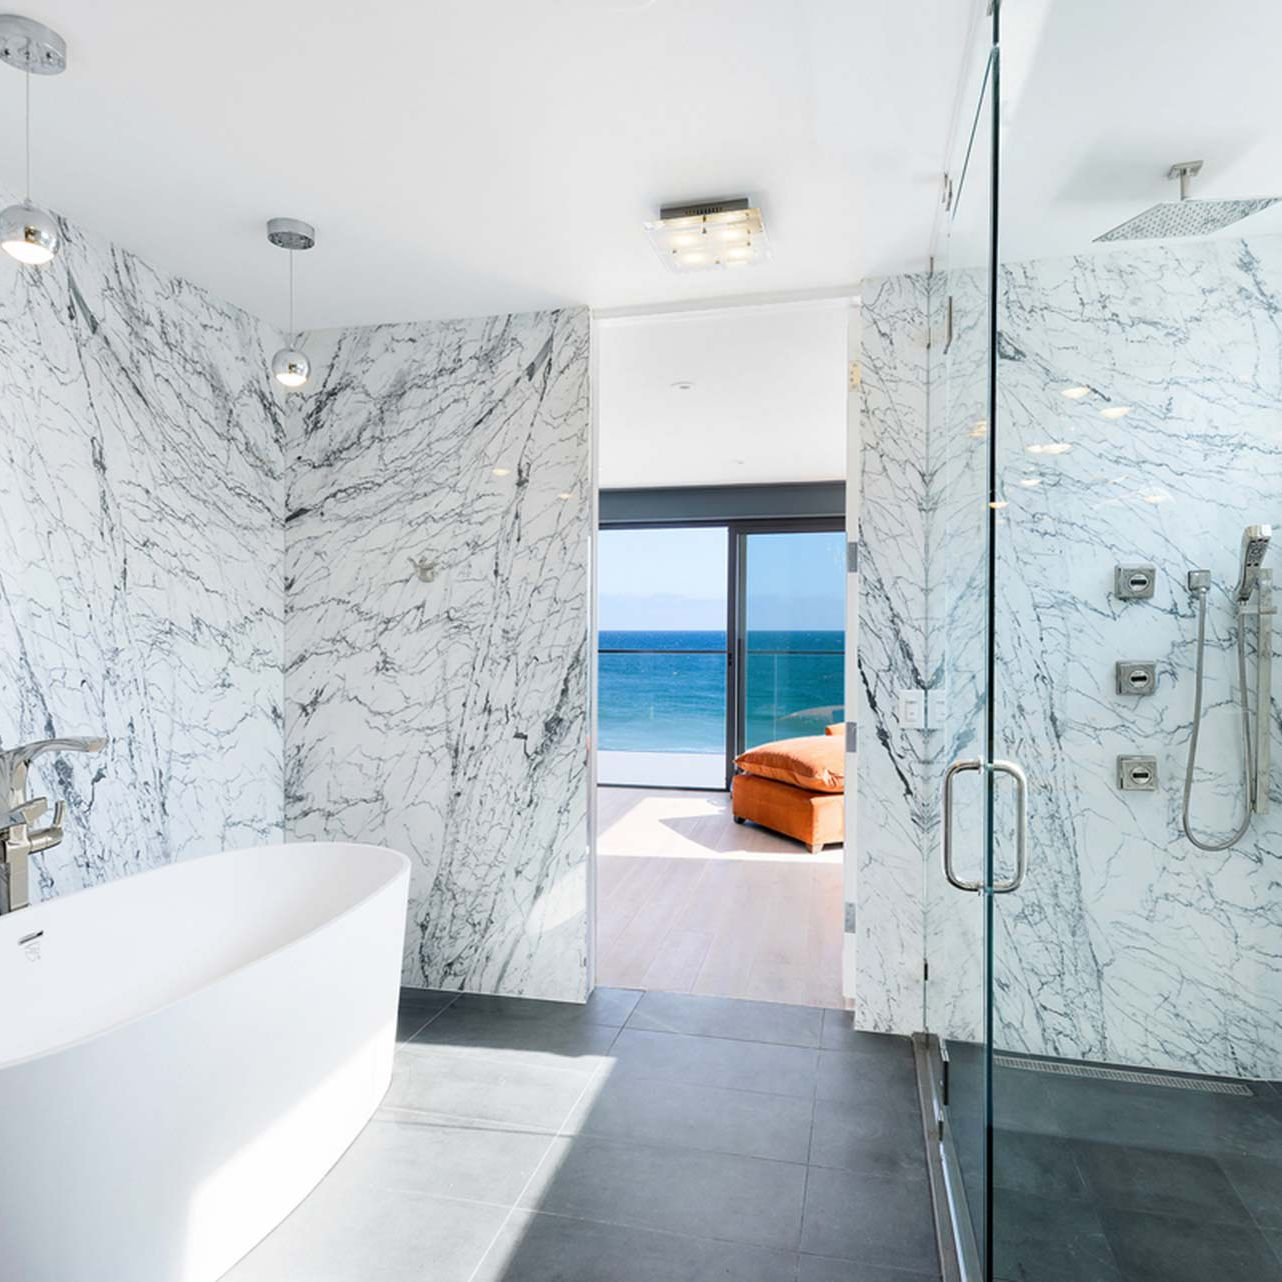 How To Make Your Bathroom Look Expensive, High End Bathroom Suites